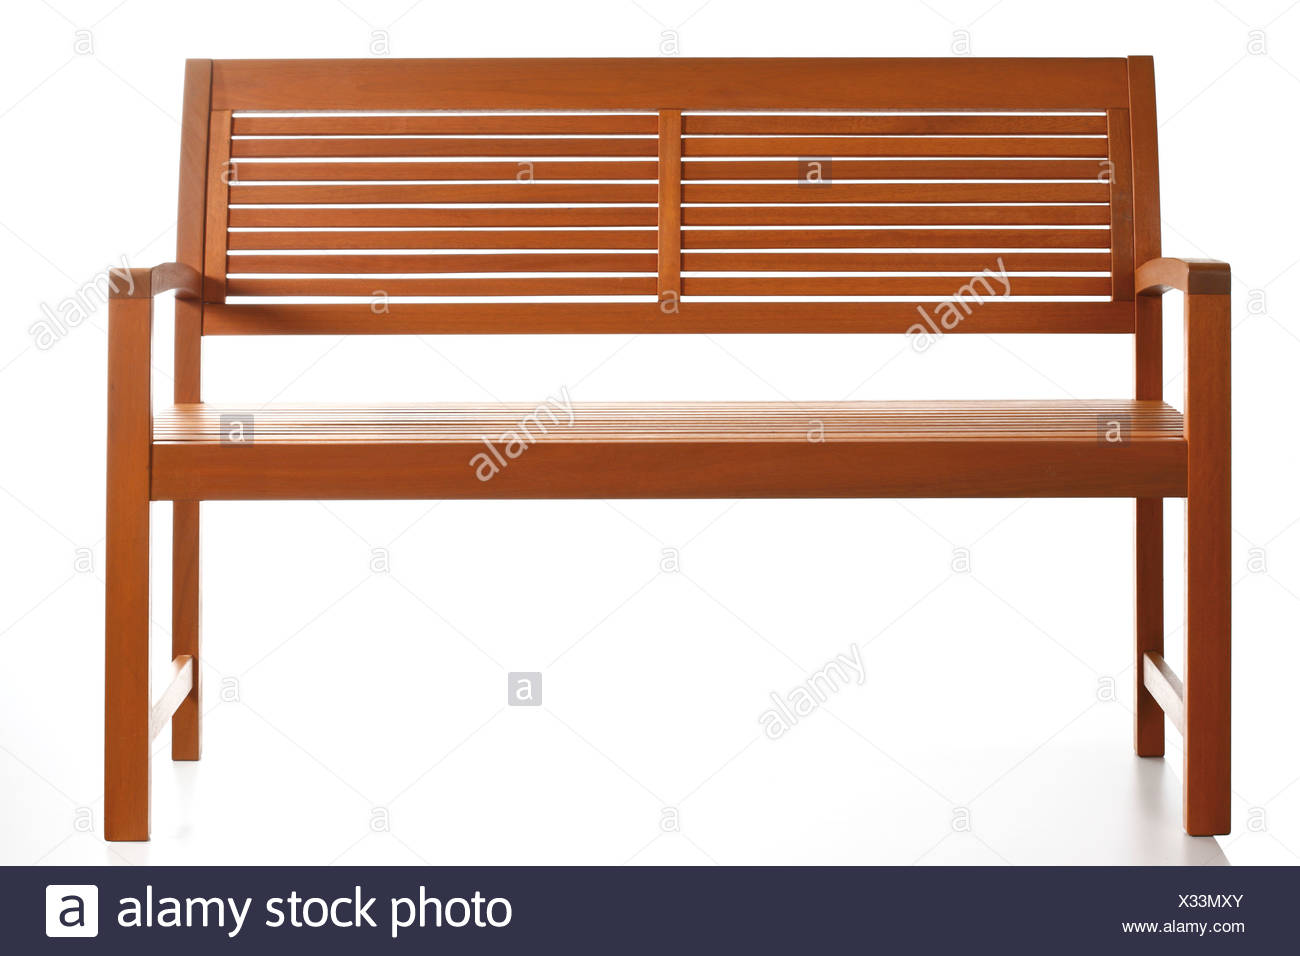 Wooden bench - Stock Image